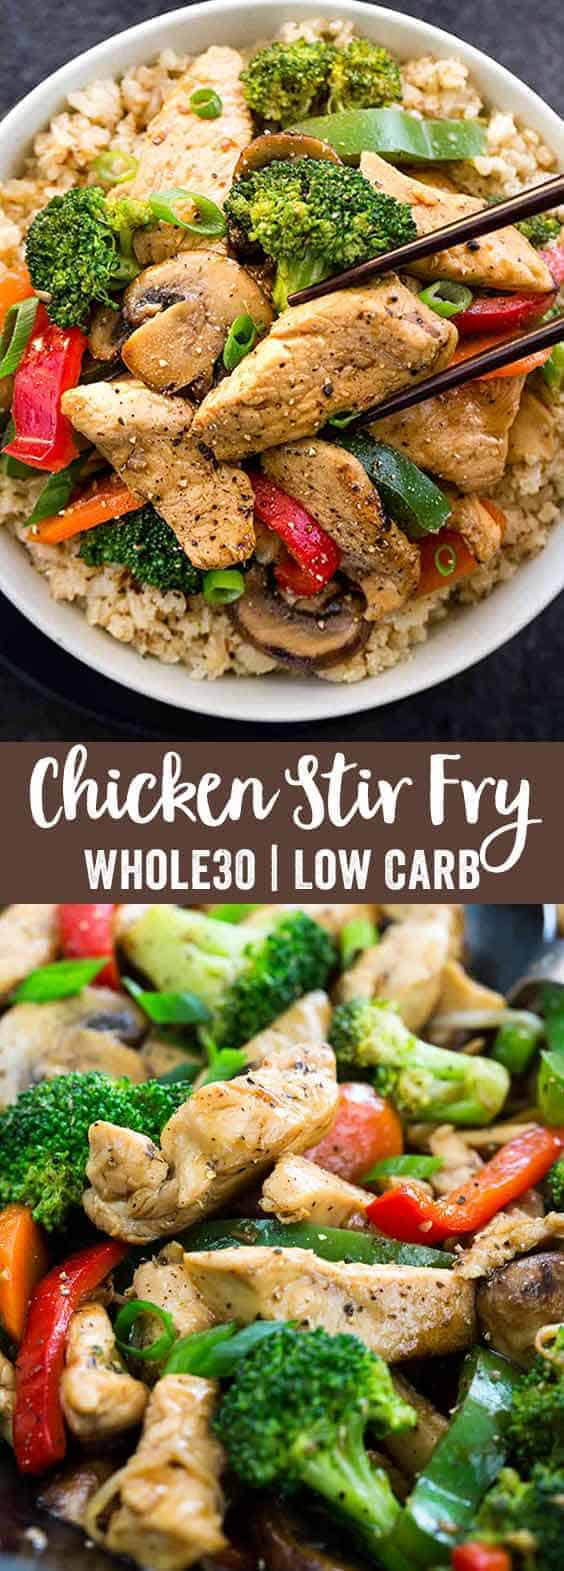 Chinese Chicken Stir-Fry with Whole30 Ingredients ...